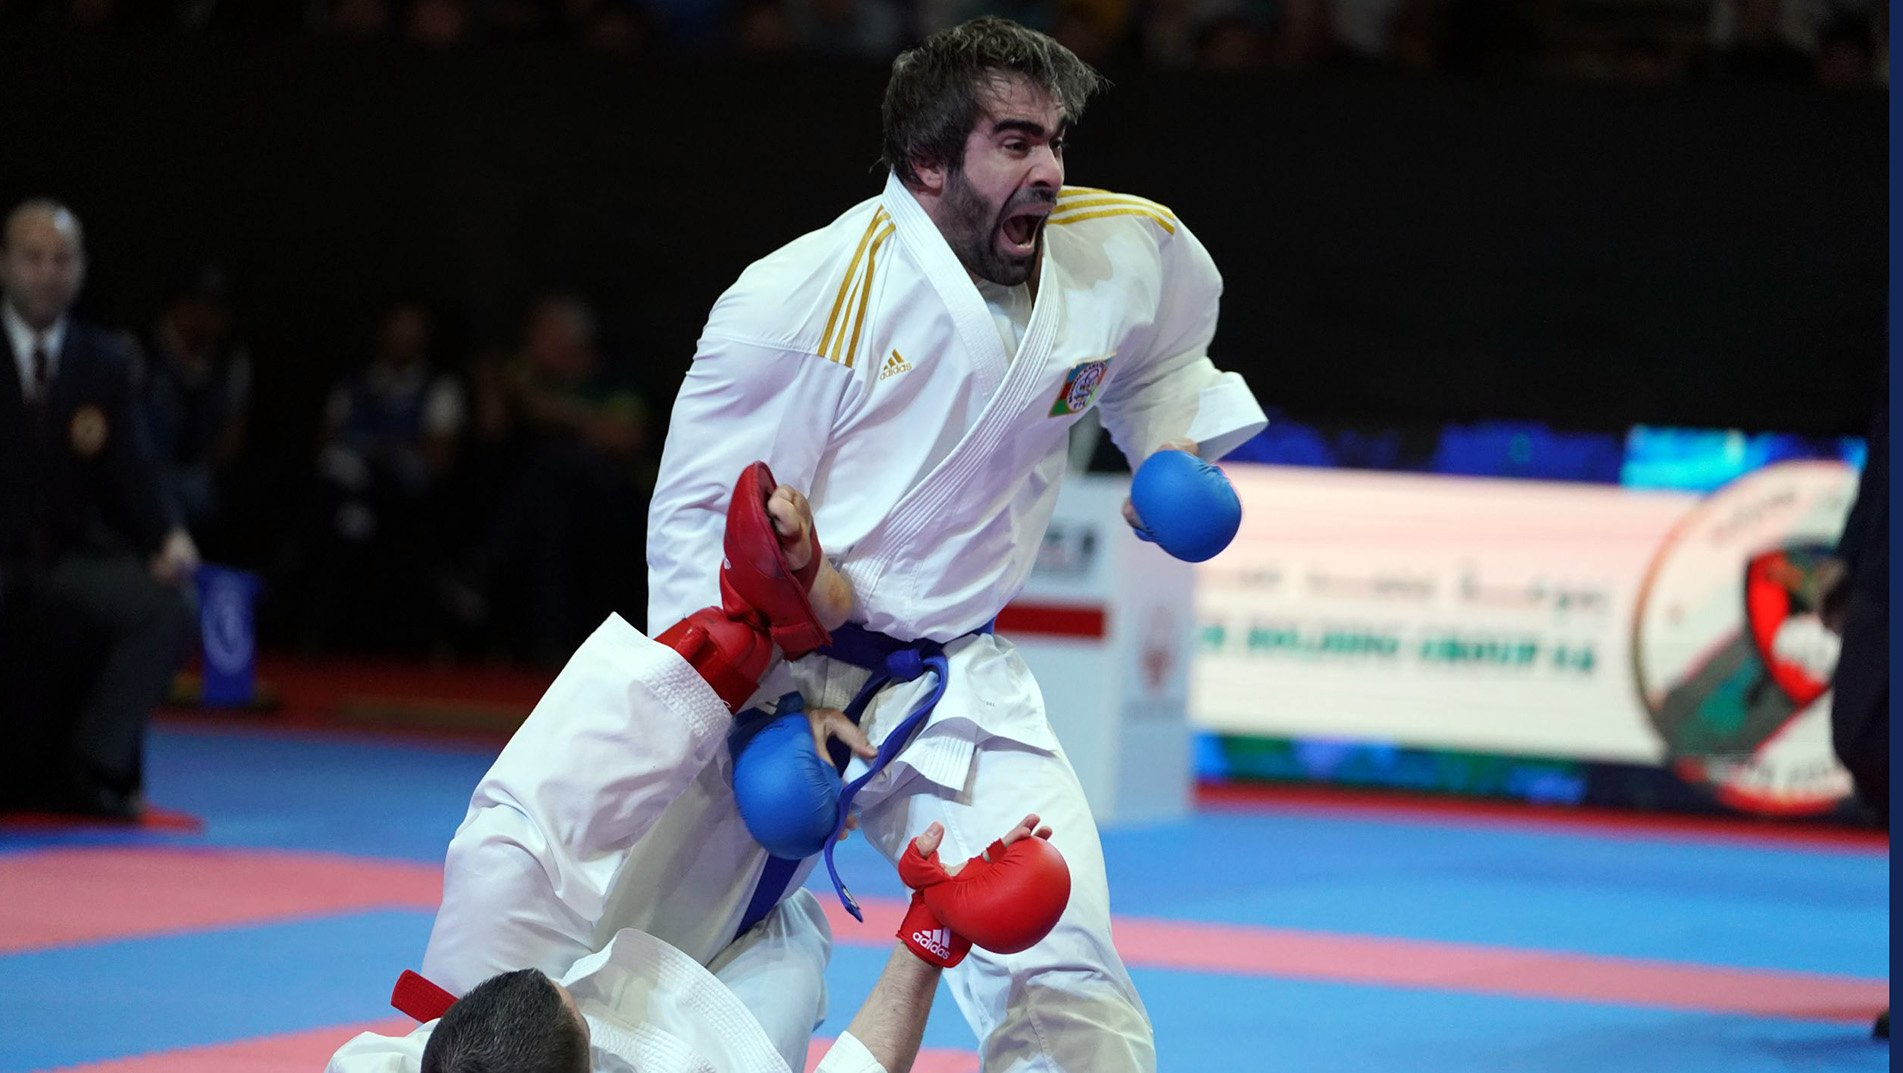 Karate stars ready to fight for glory and Olympic dream at Karate 1-Premier League Dubai